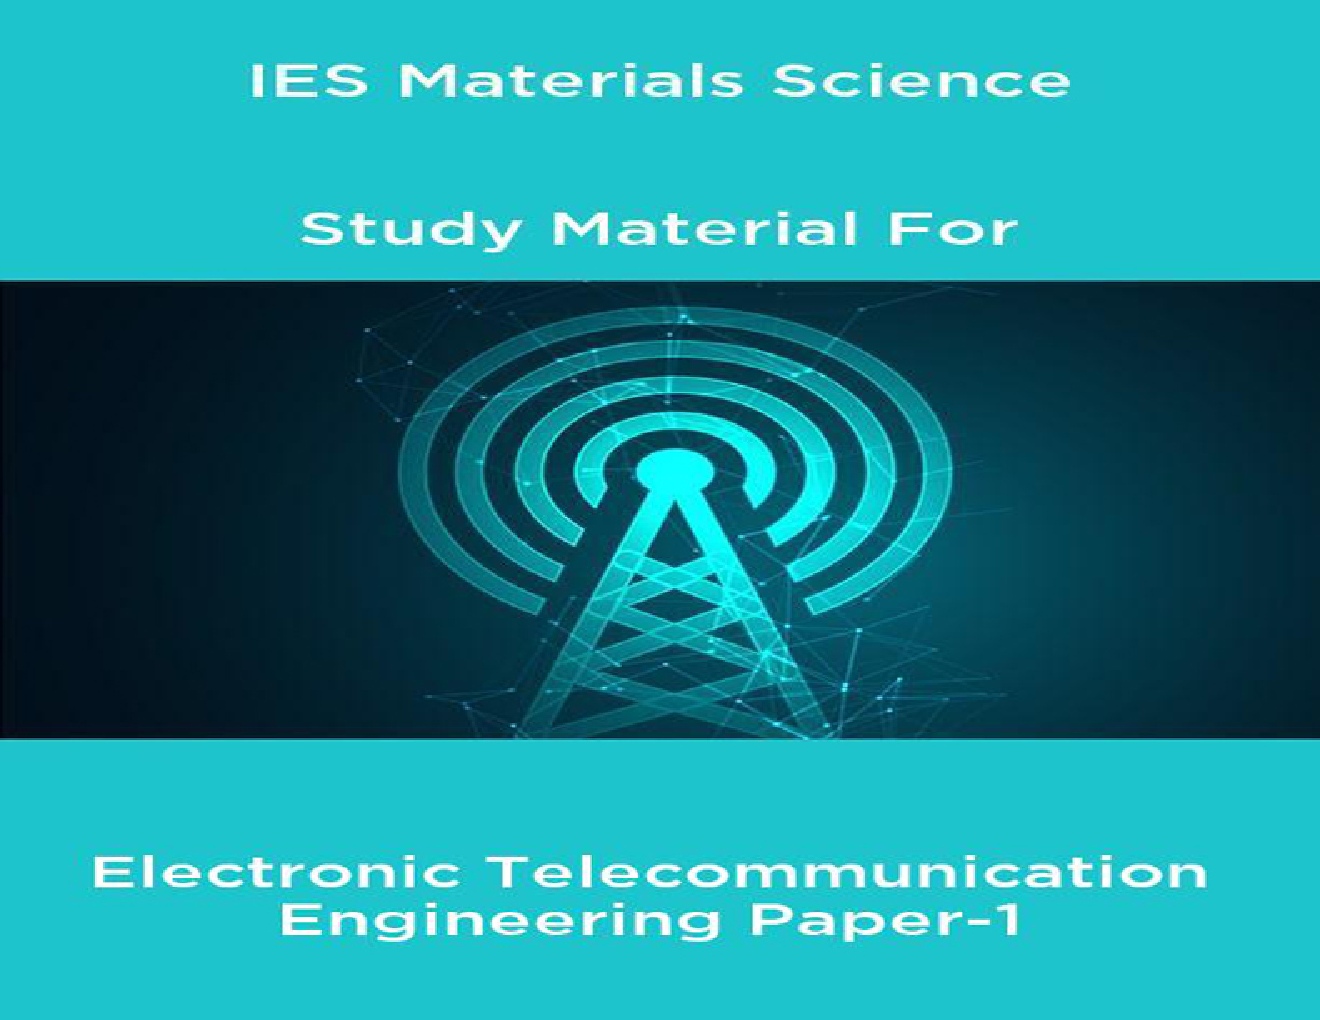 IES Materials Science Study Material For Electronic Telecommunication Engineering Paper-1 - Page 1